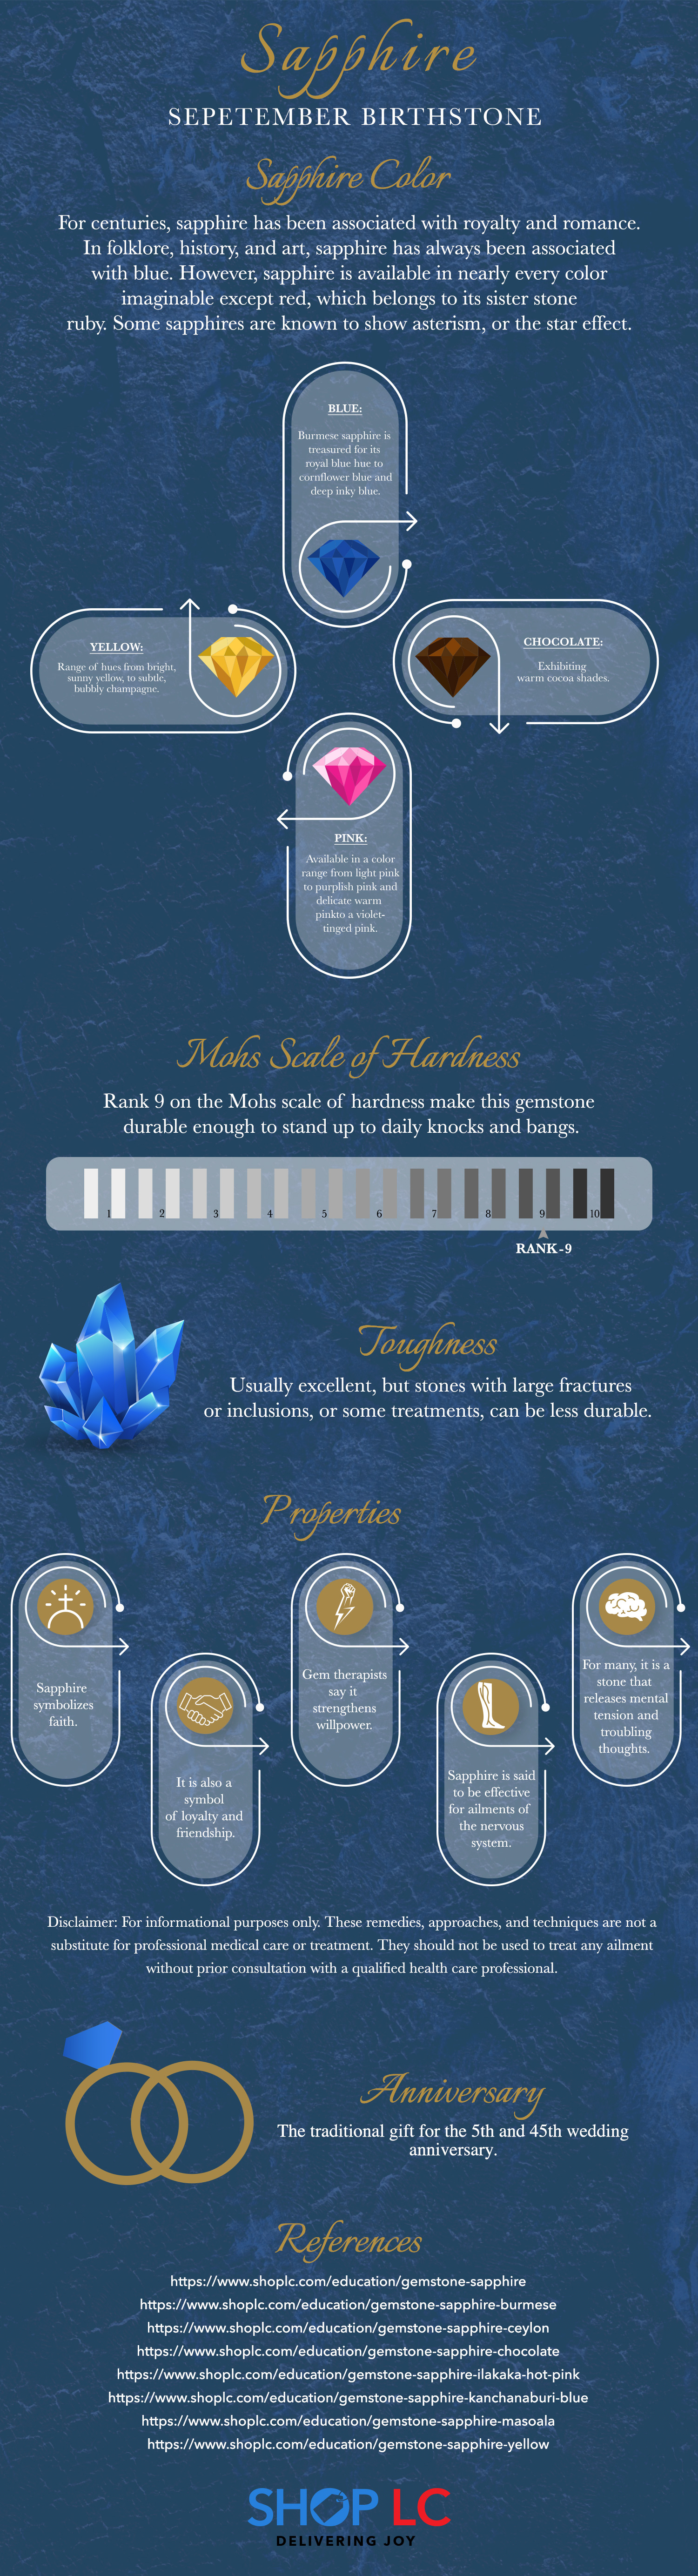 Sapphire September birthstone infographic.